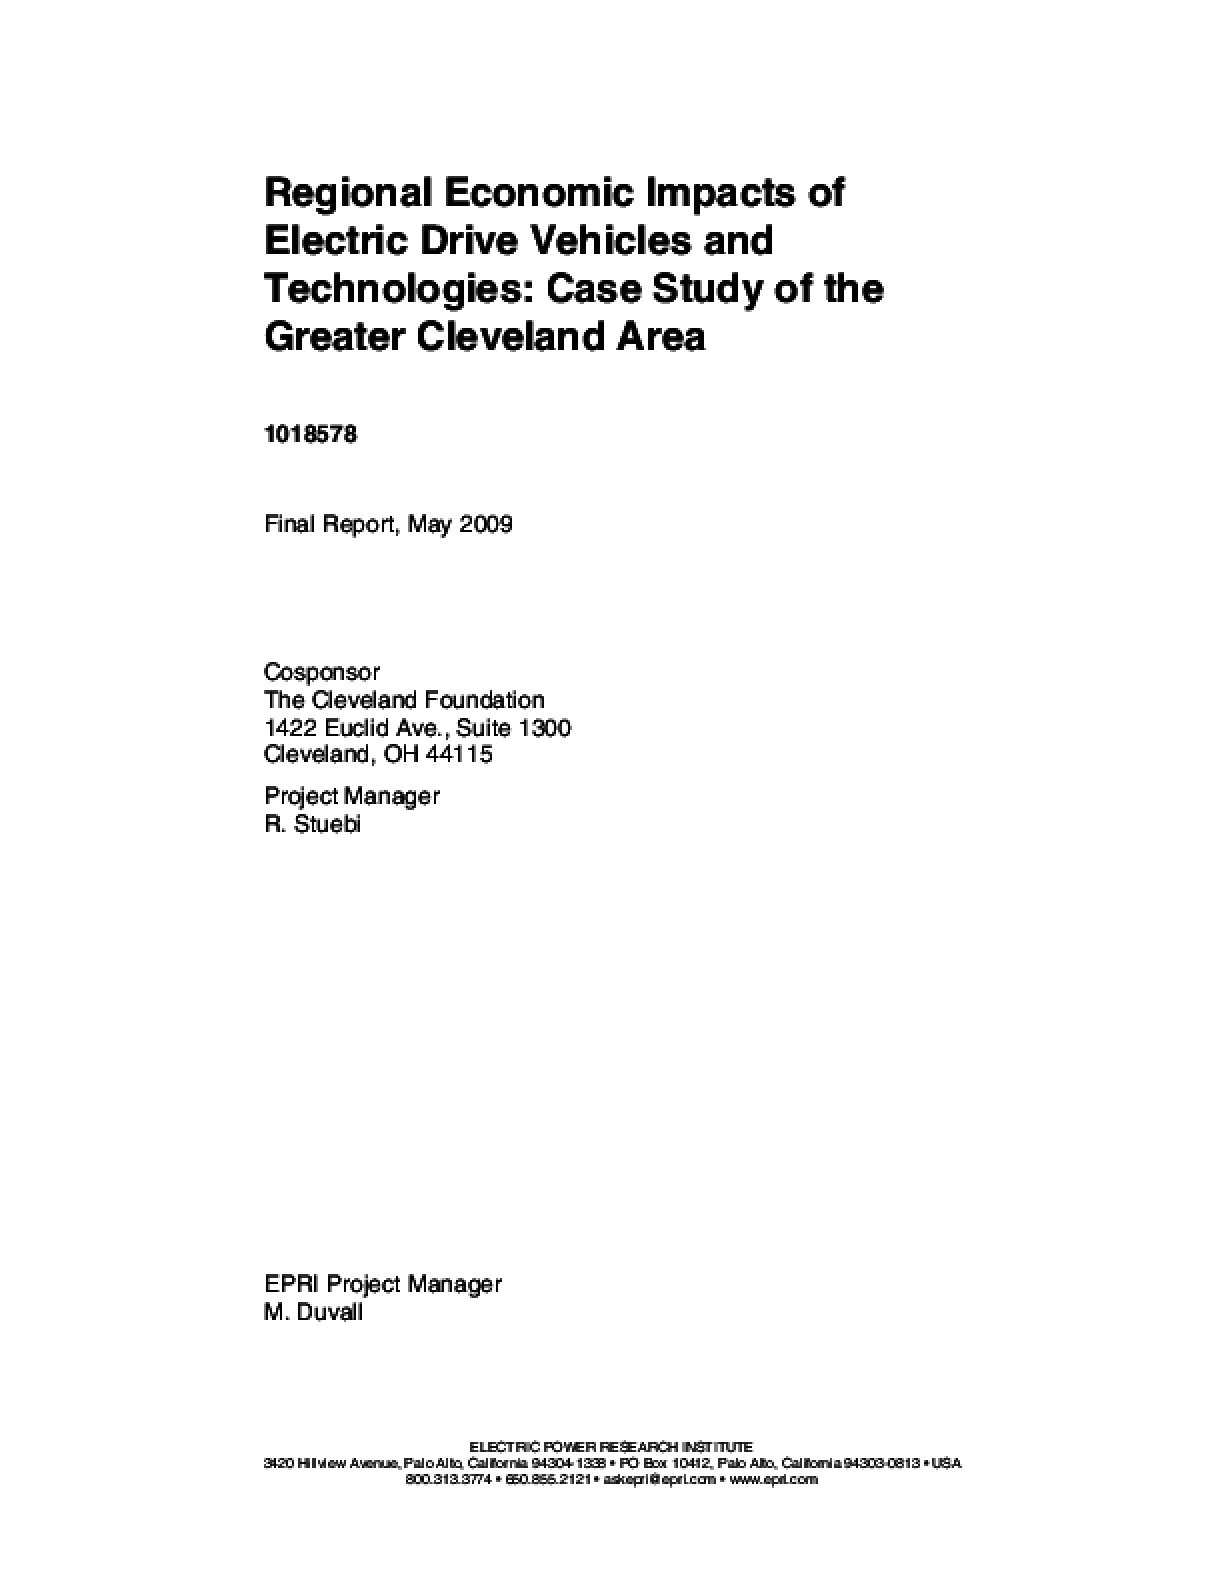 Regional Economic Impacts of Electric Drive Vehicles and Technologies: Case Study of the Greater Cleveland Area